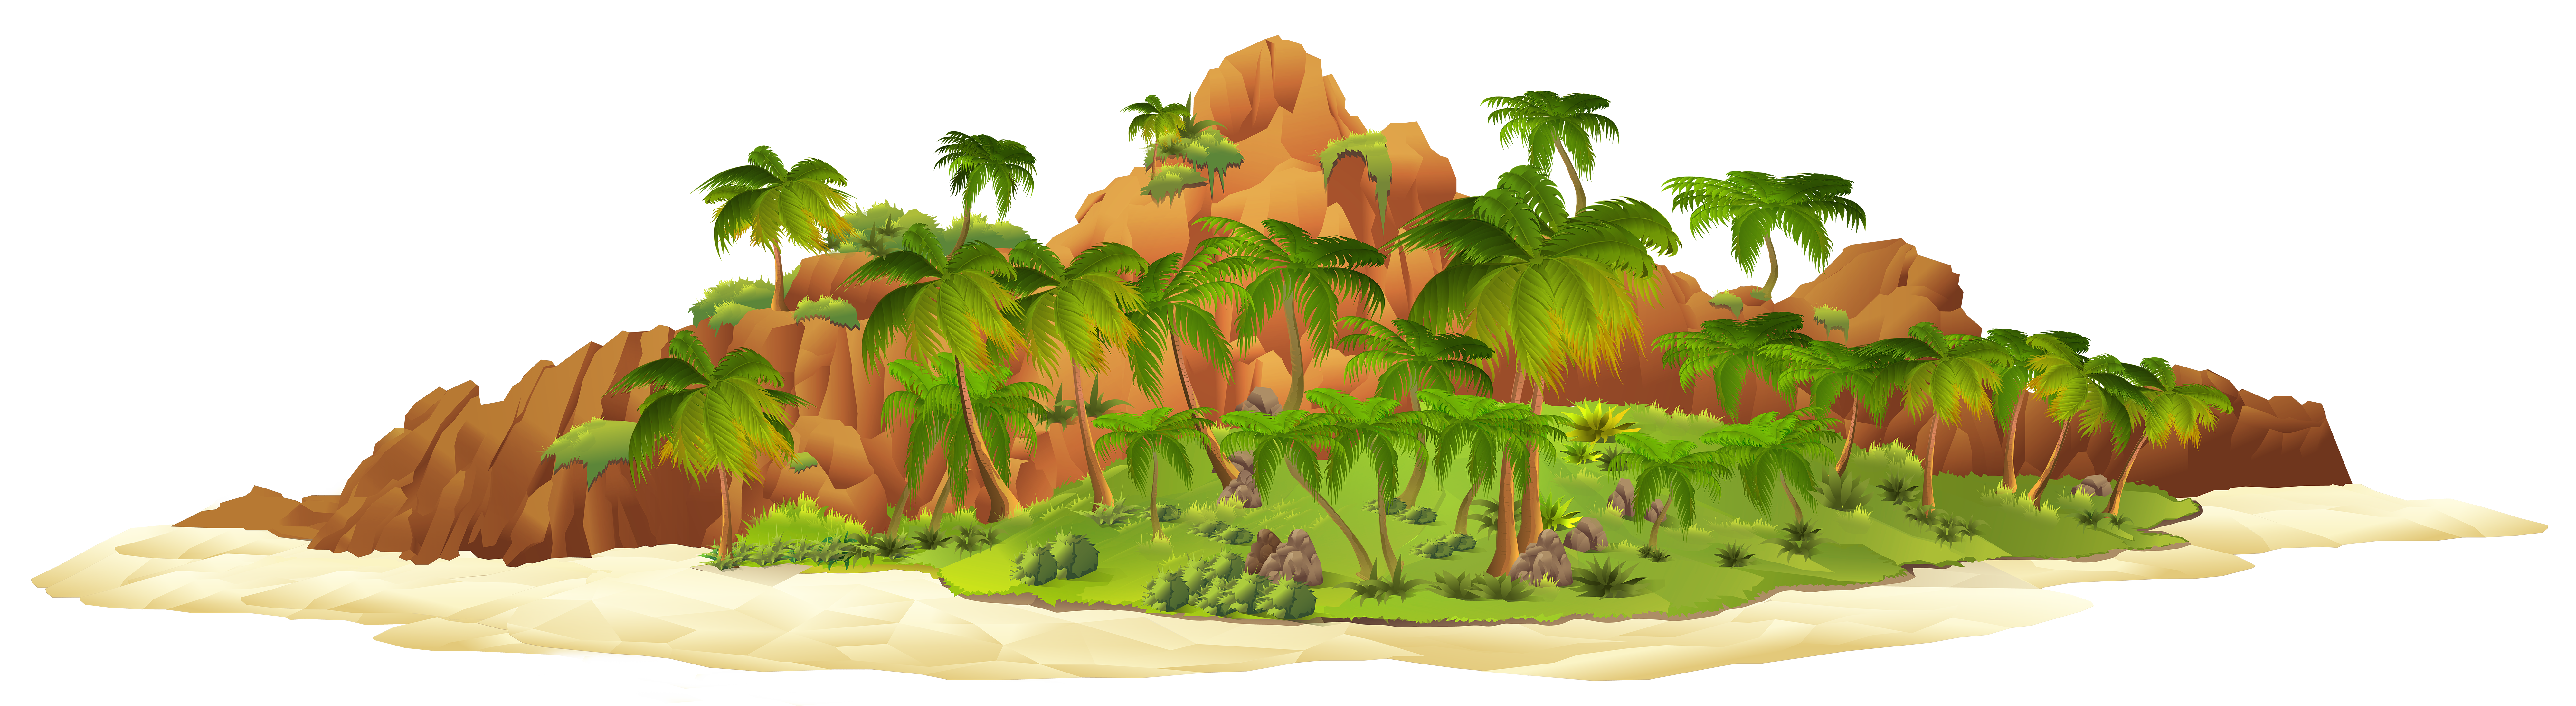 Island with palm trees. Tree clipart grass